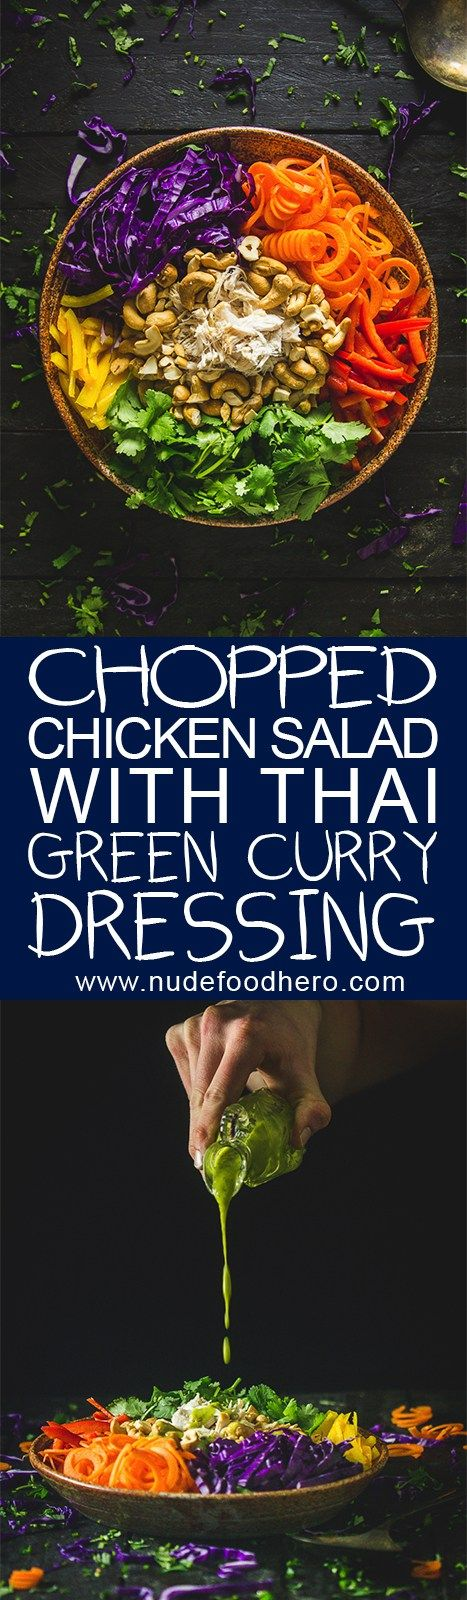 Chopped-Chicken Salad with Thai Green Curry Dressing